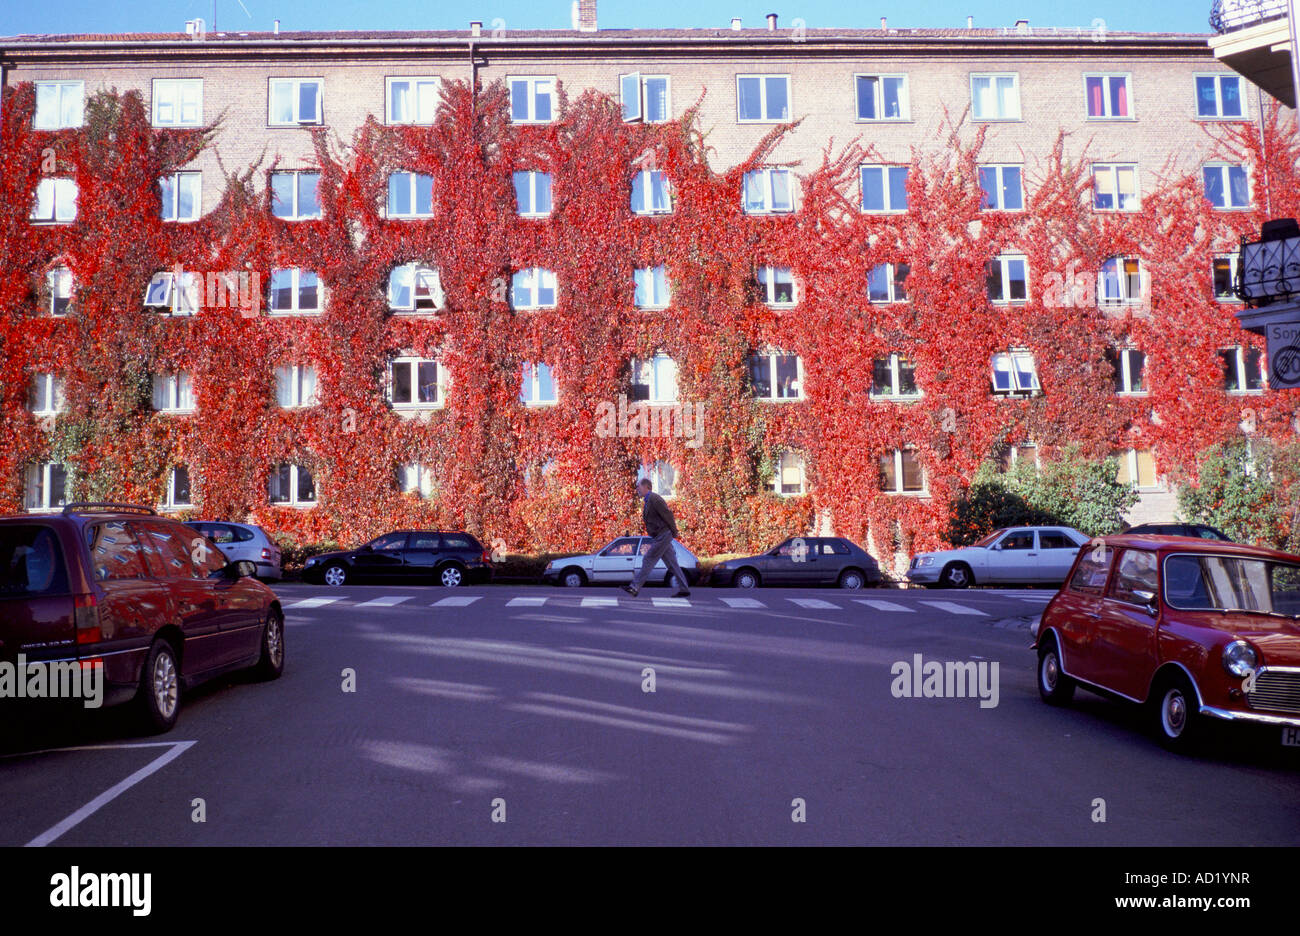 Red Ivy and cars on Waldemar Thranes Gate in the St hanshaugen area of Oslo - Stock Image